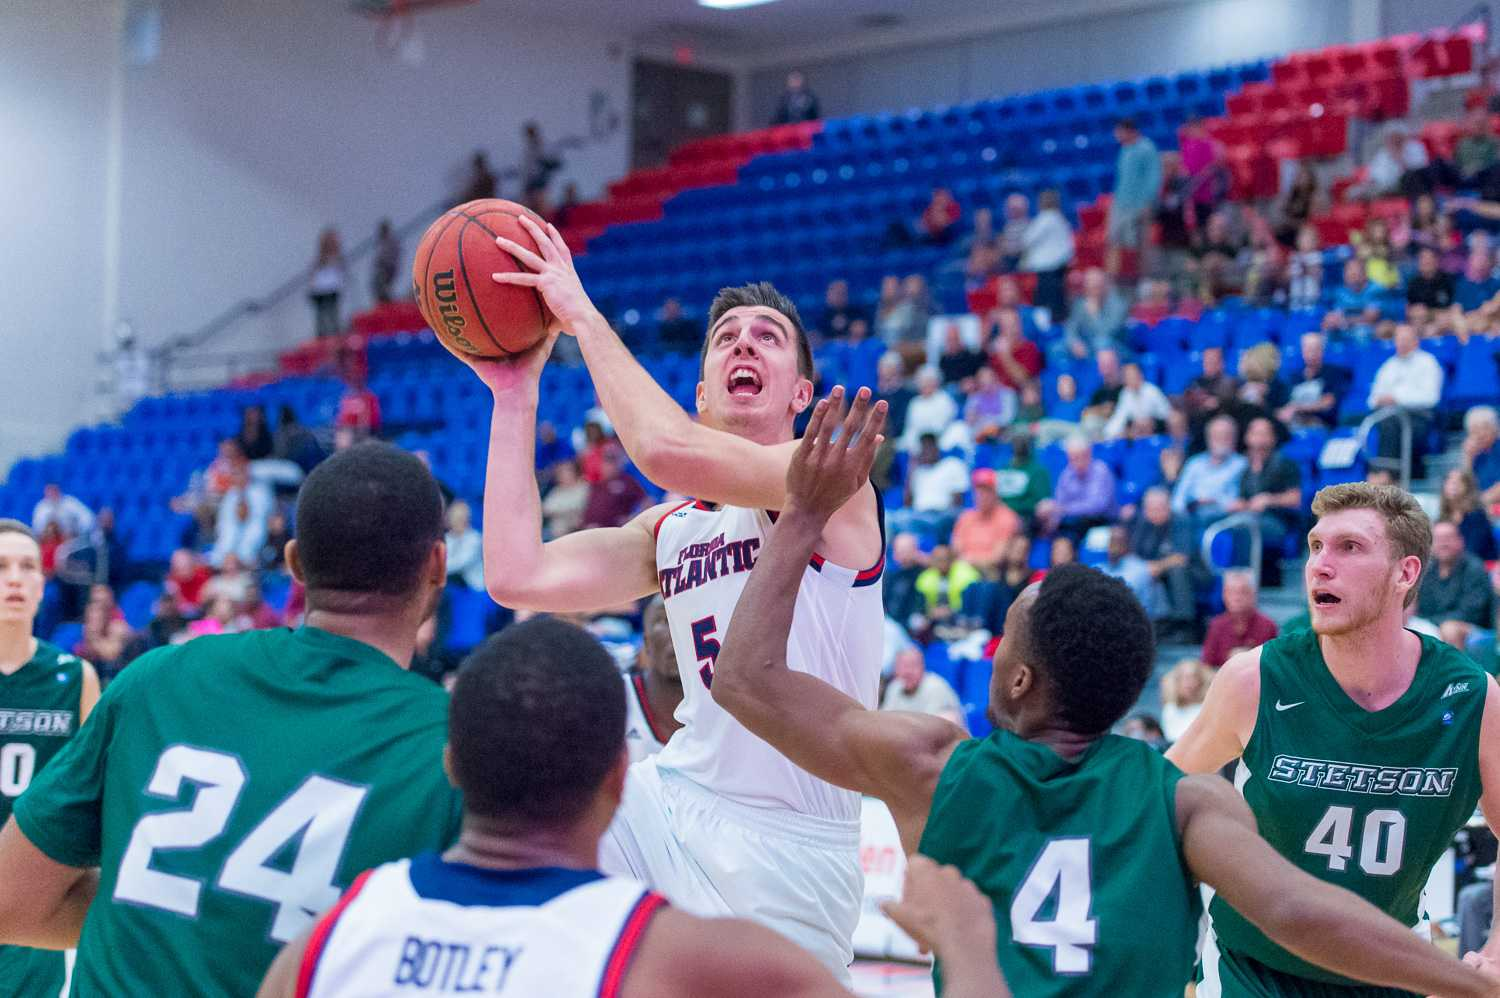 FAU forward Javier Lacunza draws a foul late in the first half against the Stetson Hatters.